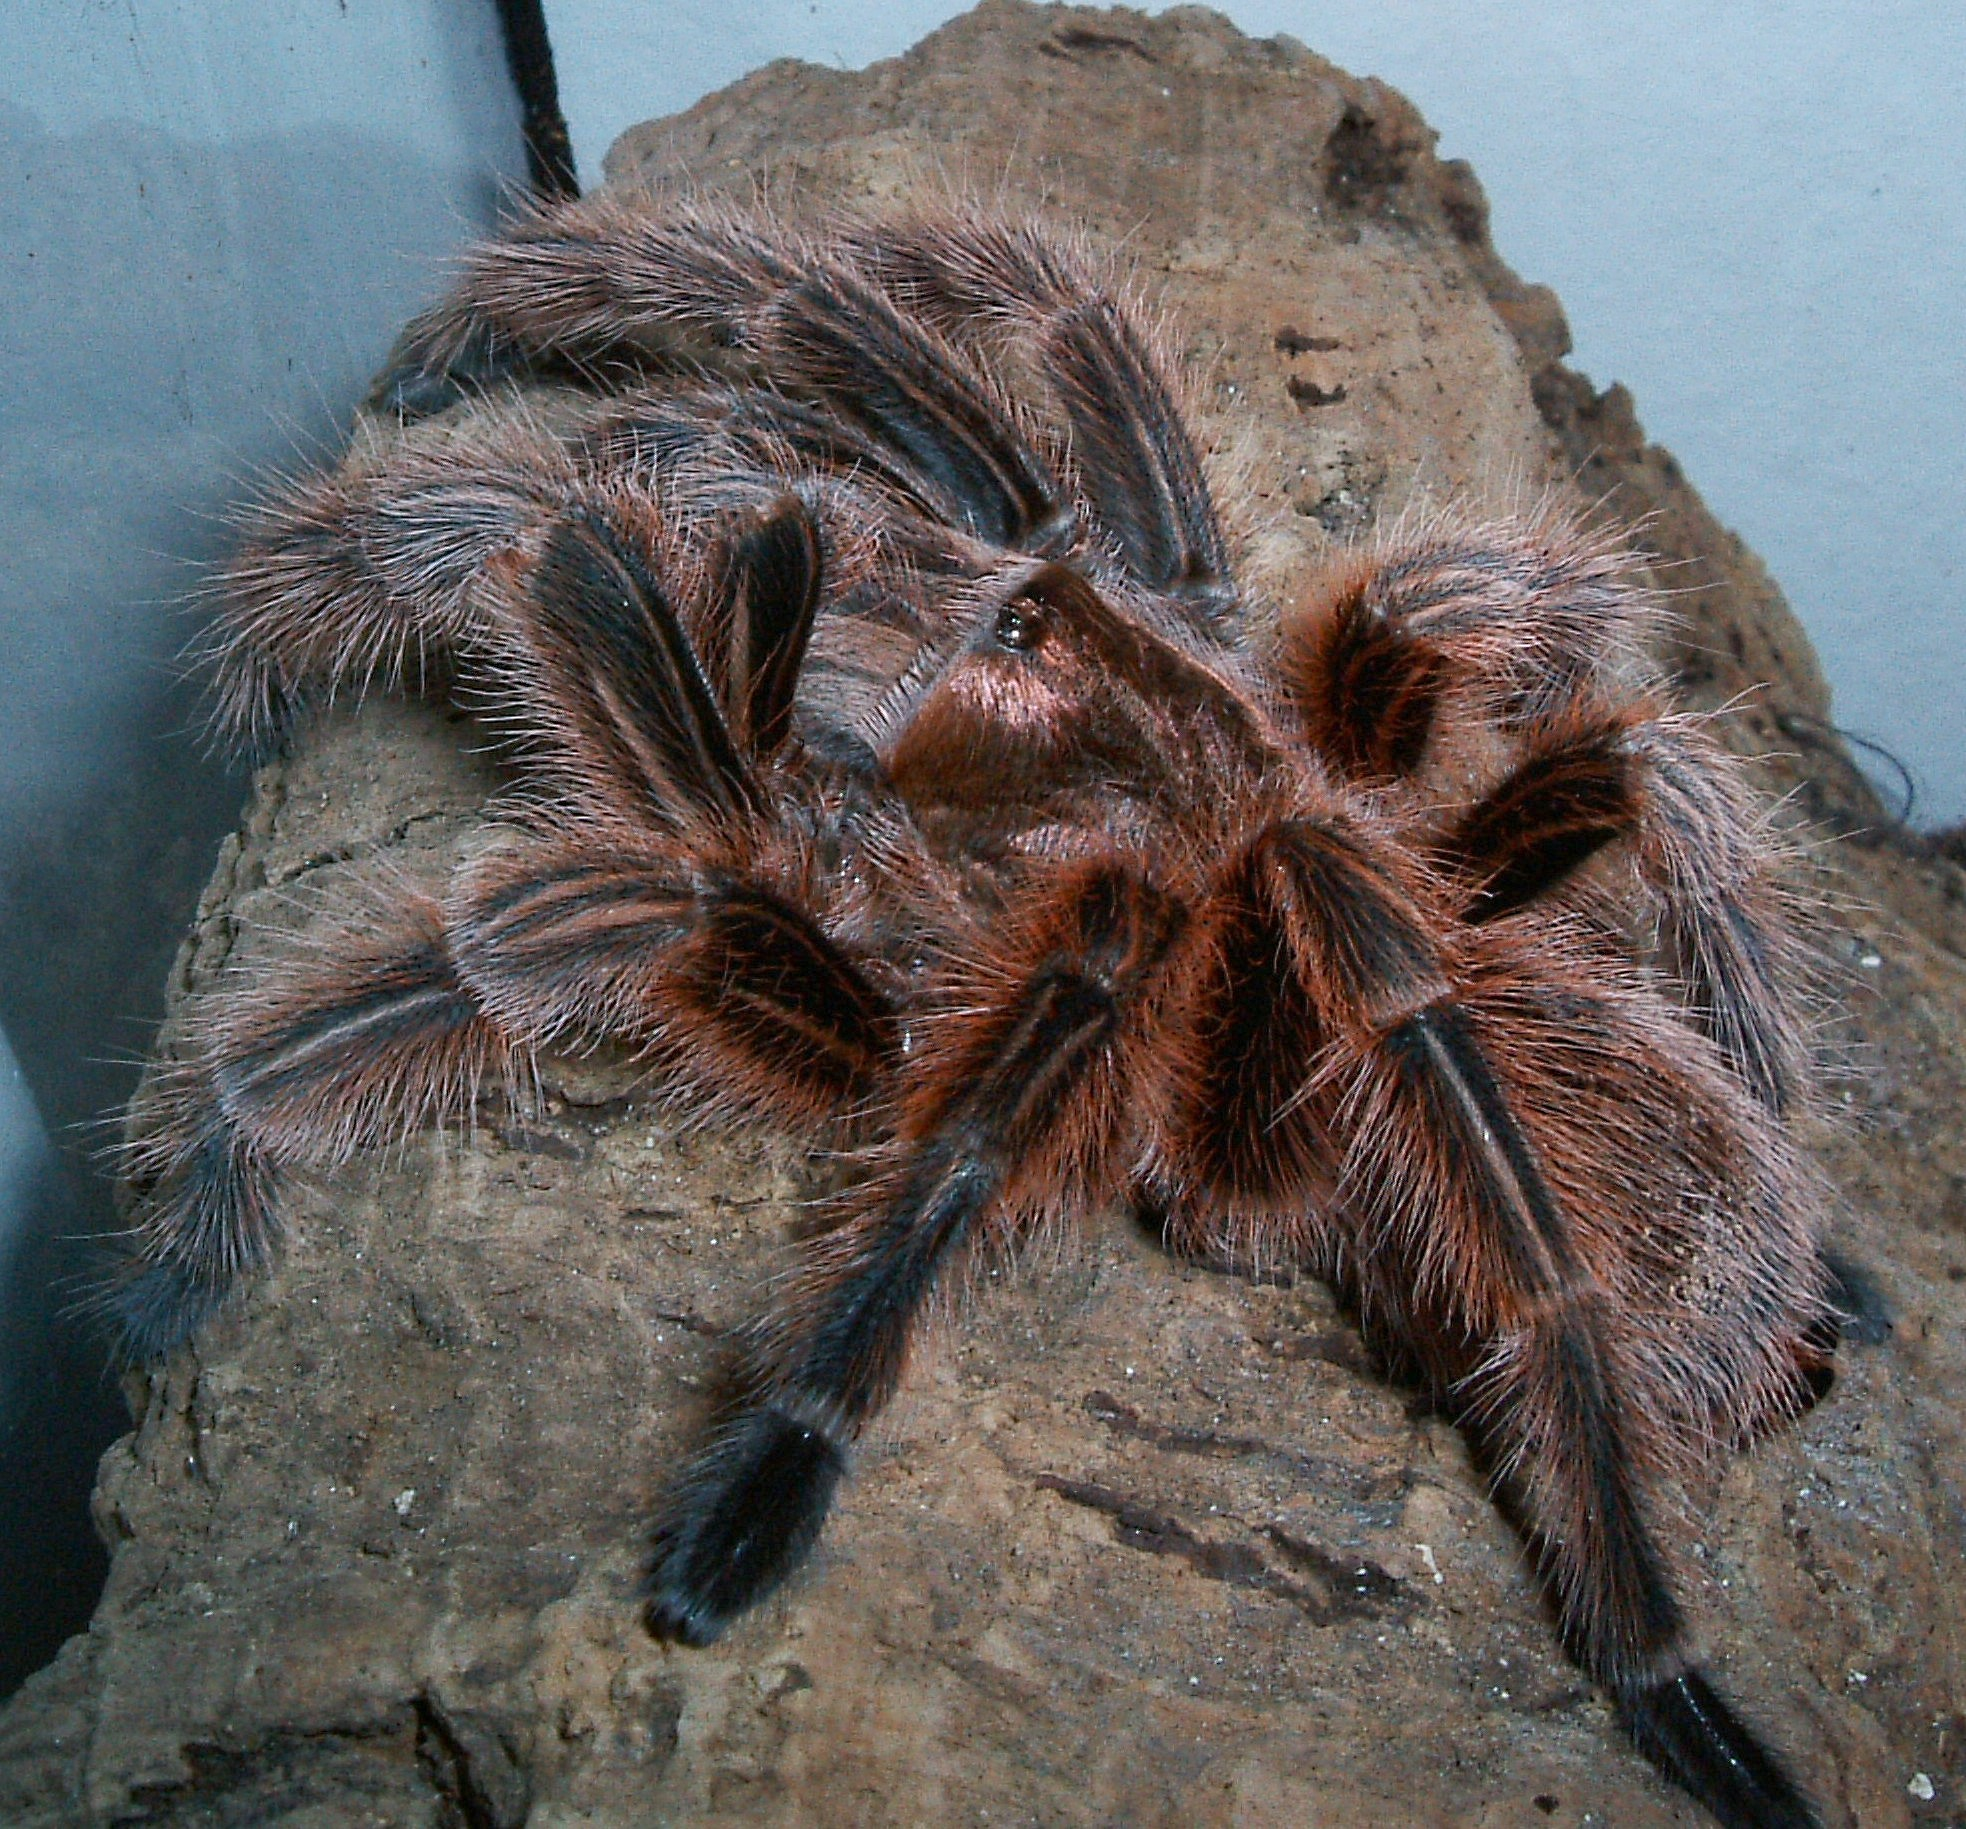 https://upload.wikimedia.org/wikipedia/commons/2/22/Grammostola_rosea_adult_weiblich.jpg